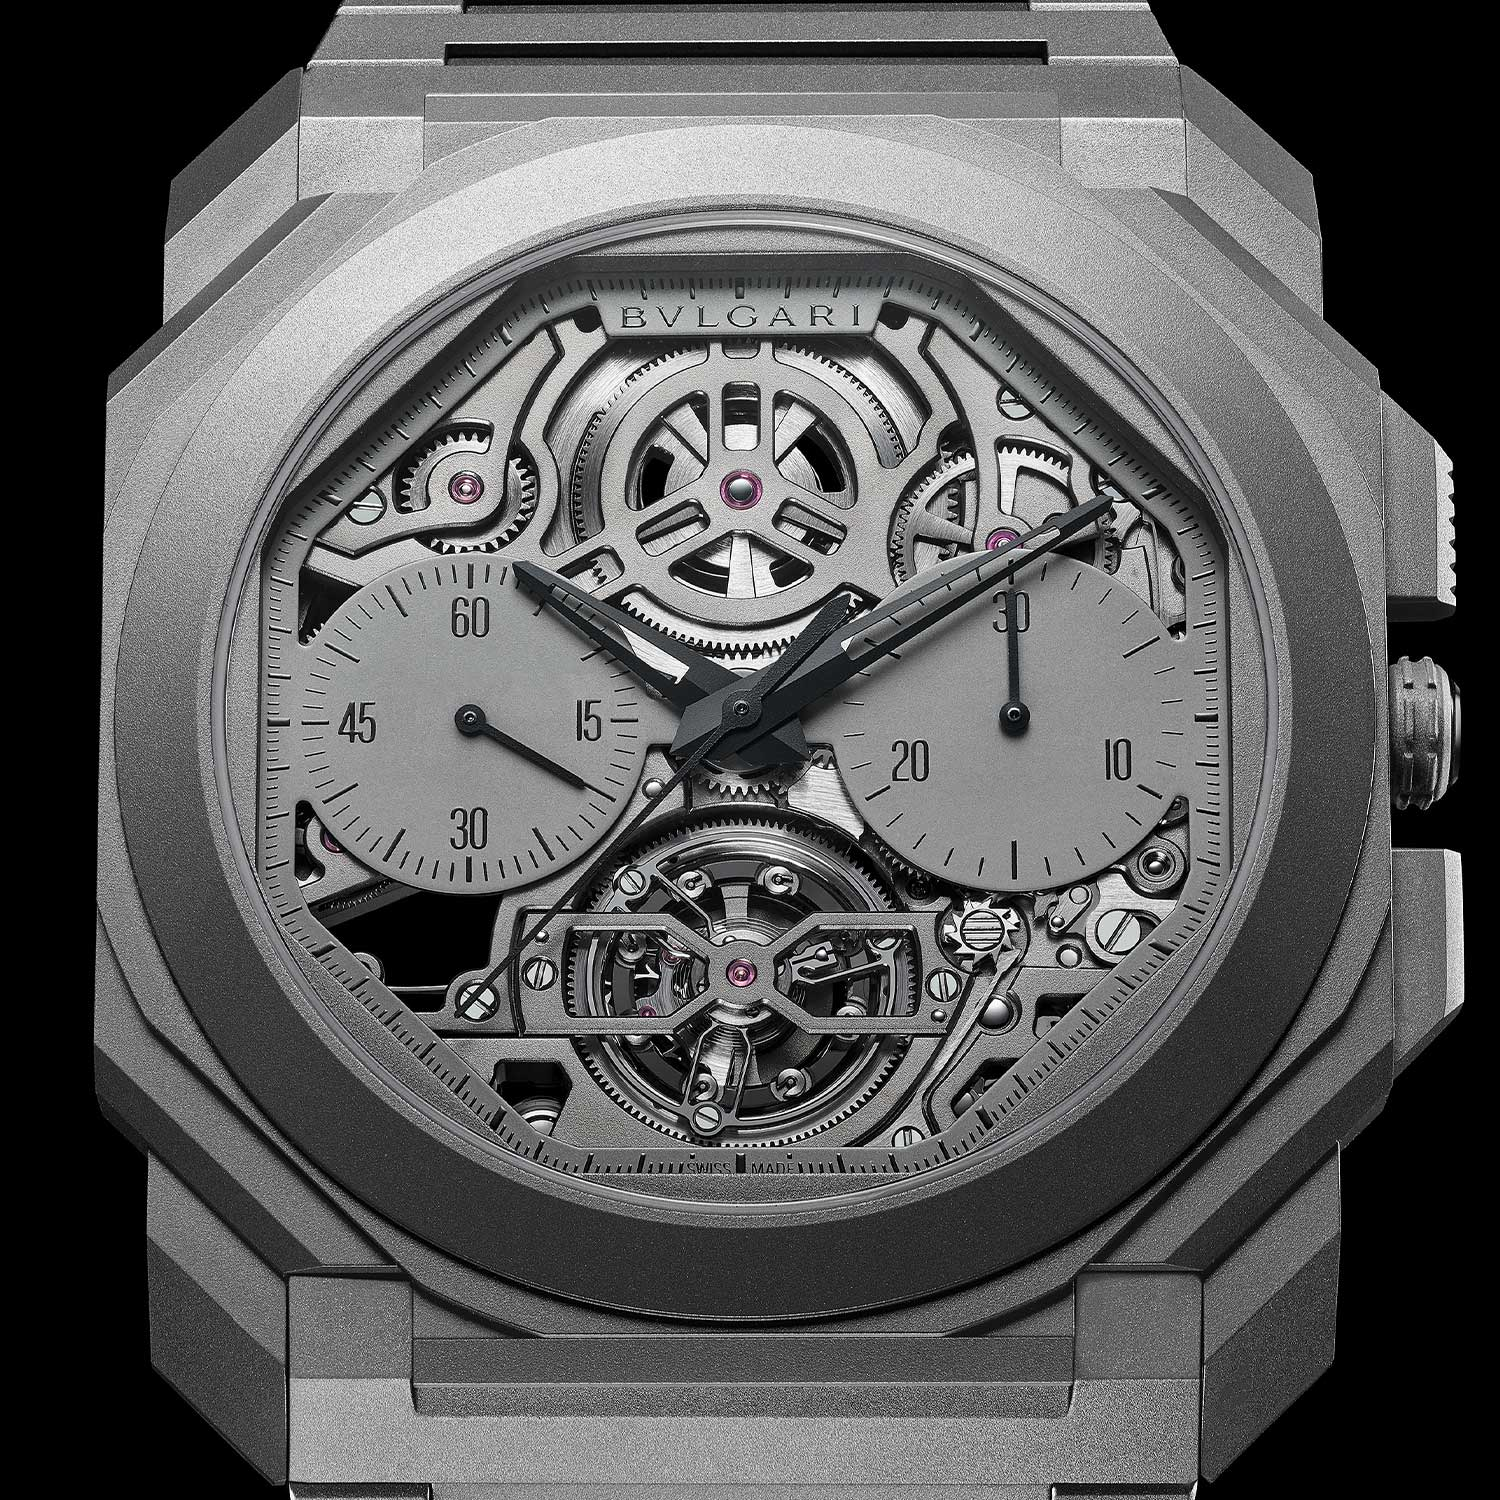 2020: Octo Finissimo Tourbillon Chronograph Skeleton Automatic At just 3.50mm thick, the new Octo Finissimo Tourbillon Chronograph Automatic movement claims a new watch industry record for the sixth time. The watch features Bvlgari's record breaking chronograph, now in a two-counter display, as well as a tourbillon at six o'clock. The dial is skeletonised to fully show the complexity of the BVL 388 caliber from the front.